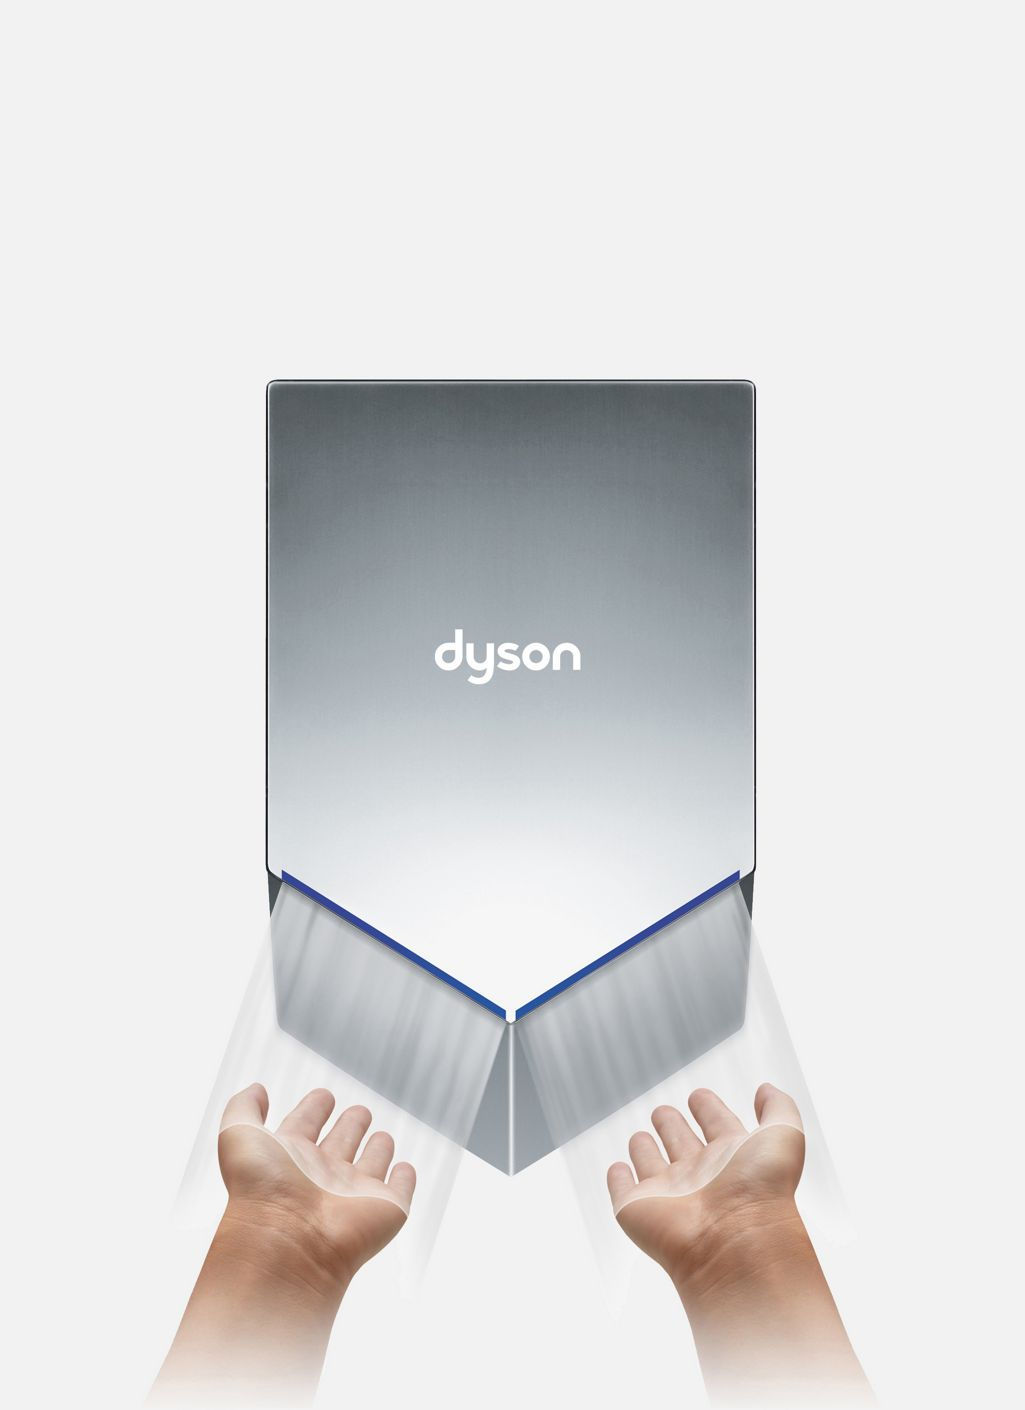 Dyson Airblade Hand Dryer: The Ultimate Machine